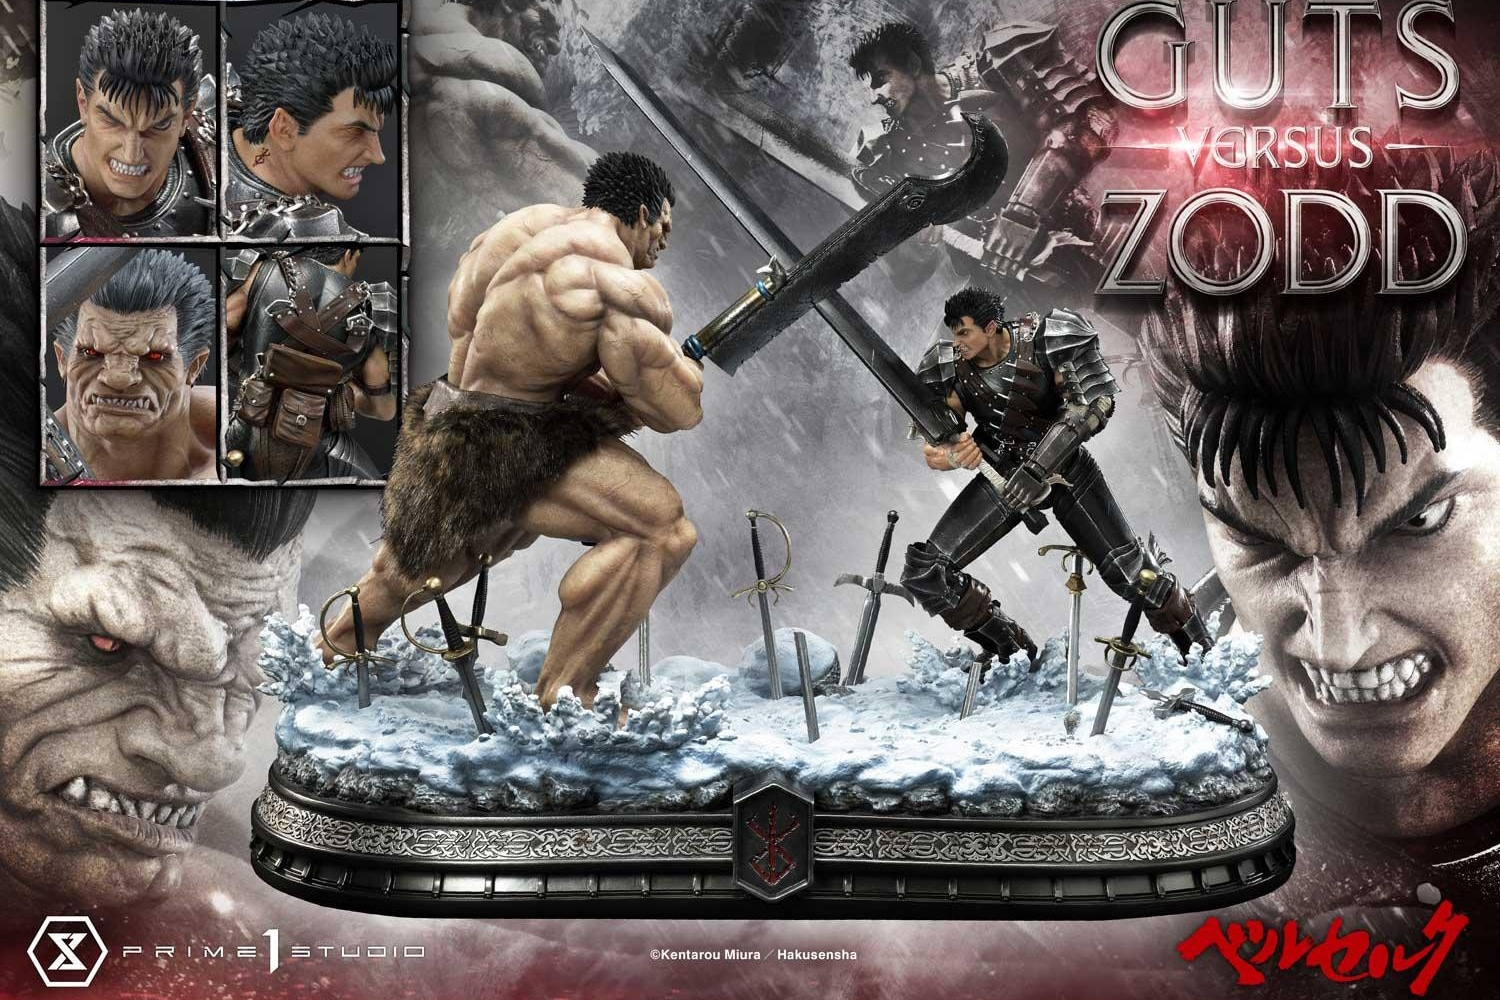 Prime 1 Studio's New Statue Shows Guts Clashing with Zodd